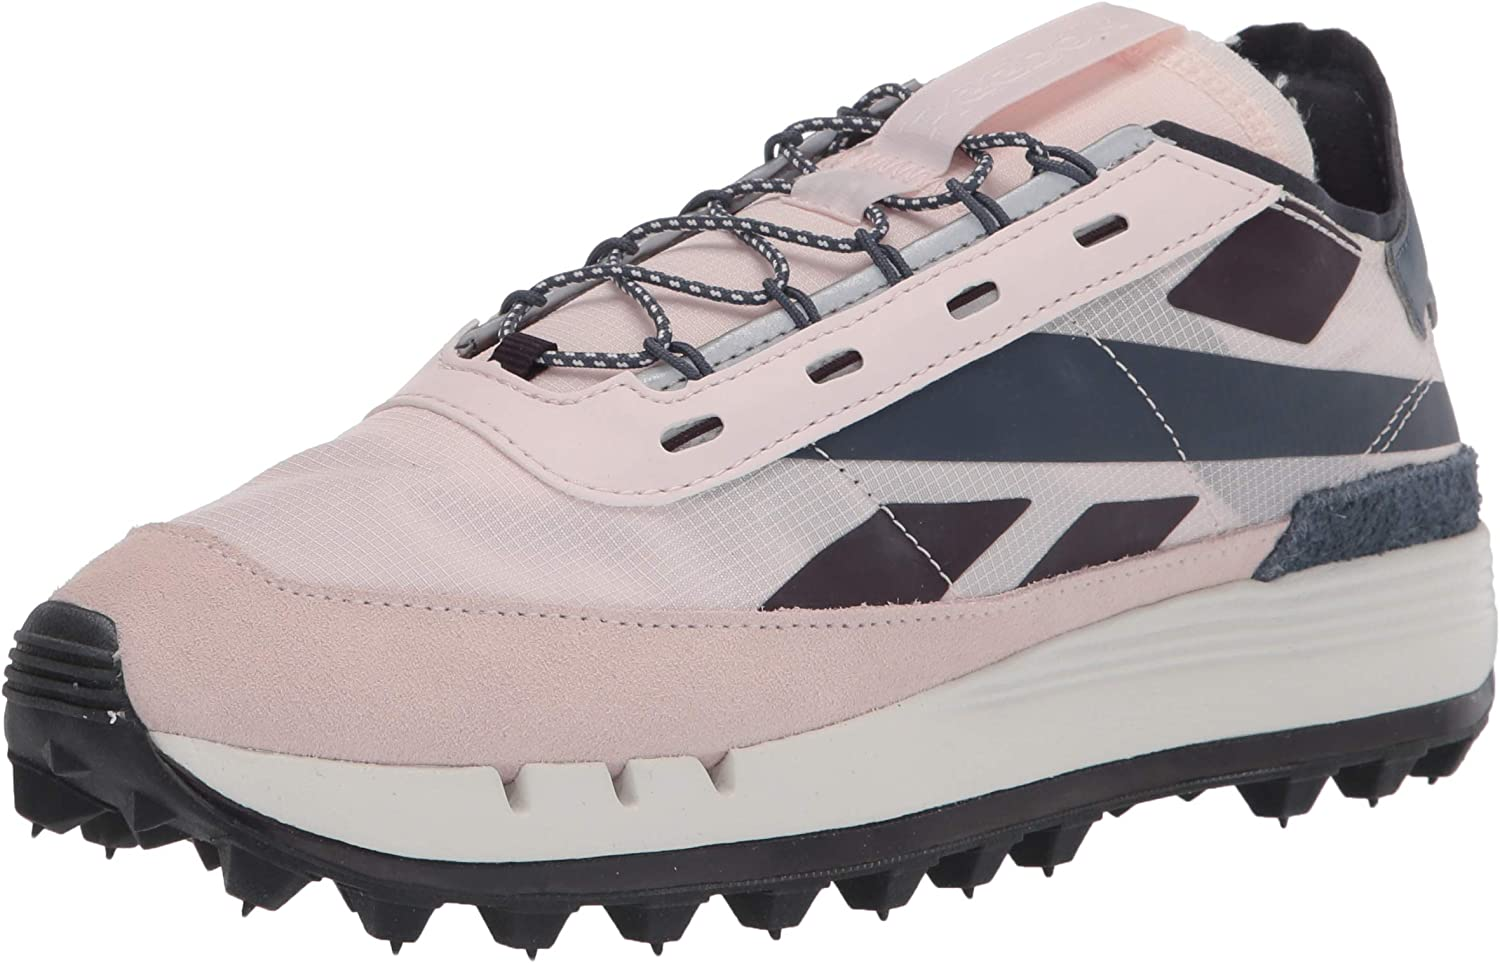 Large discharge sale Reebok Women's Classic Legacy Sneaker 83 Outlet SALE